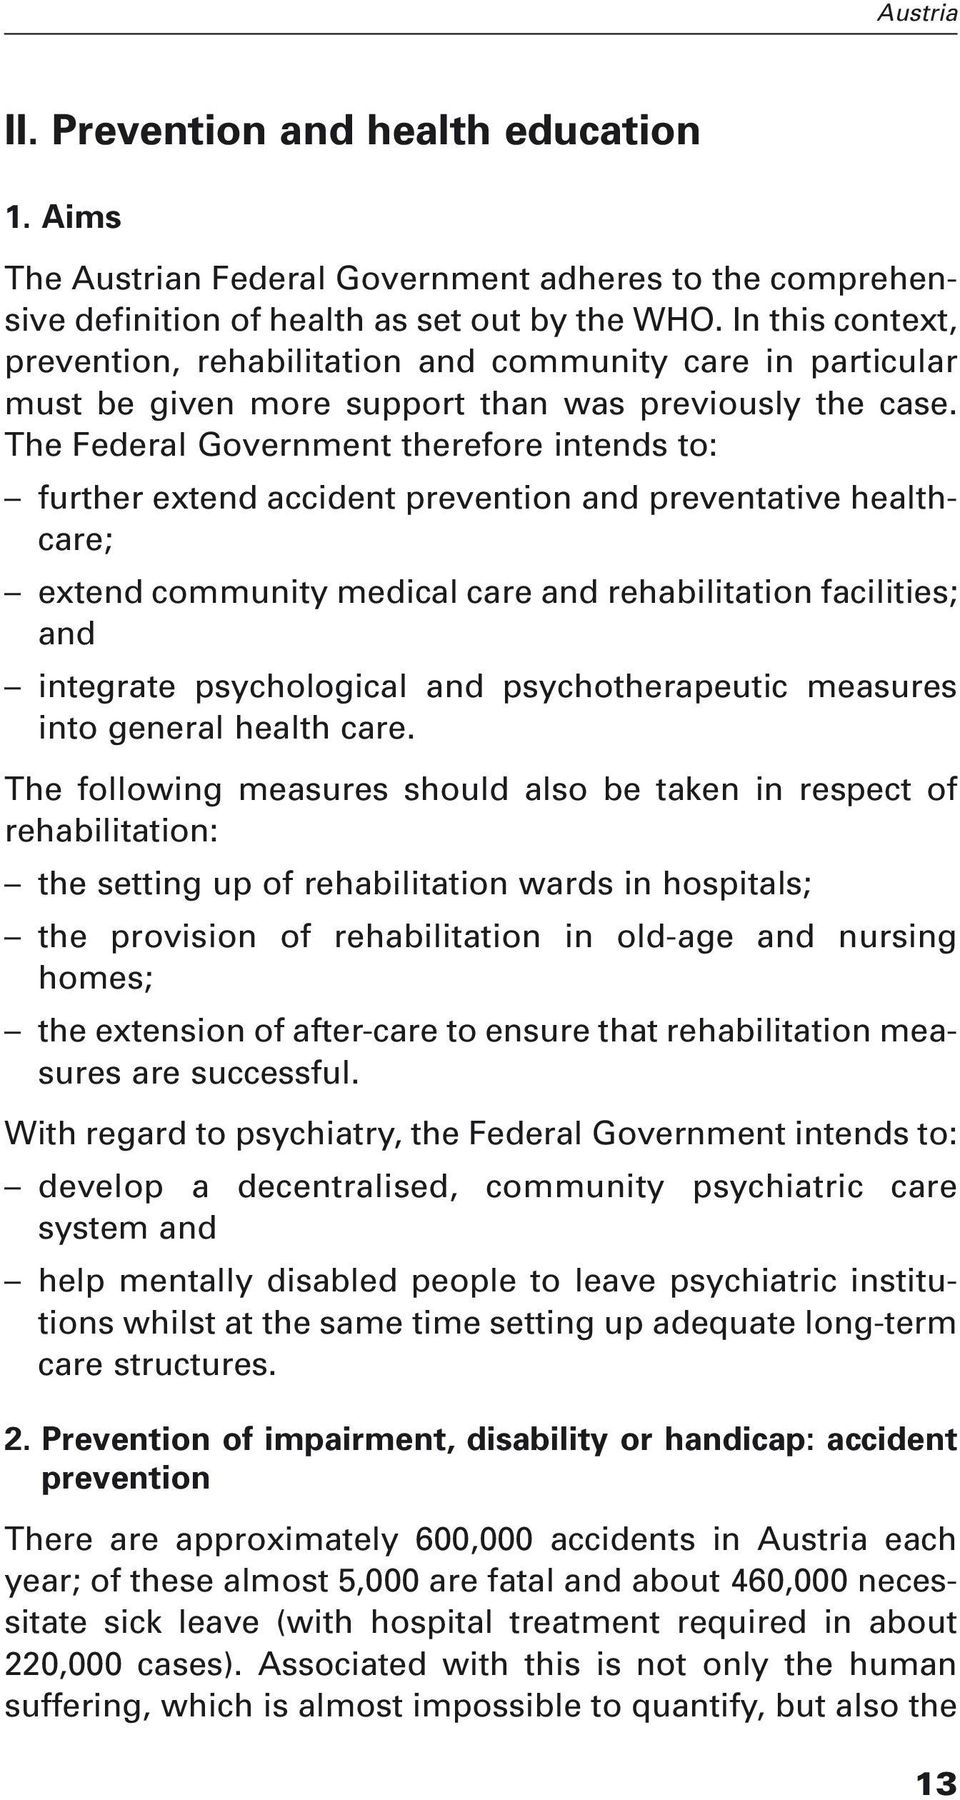 The Federal Government therefore intends to: further extend accident prevention and preventative healthcare; extend community medical care and rehabilitation facilities; and integrate psychological